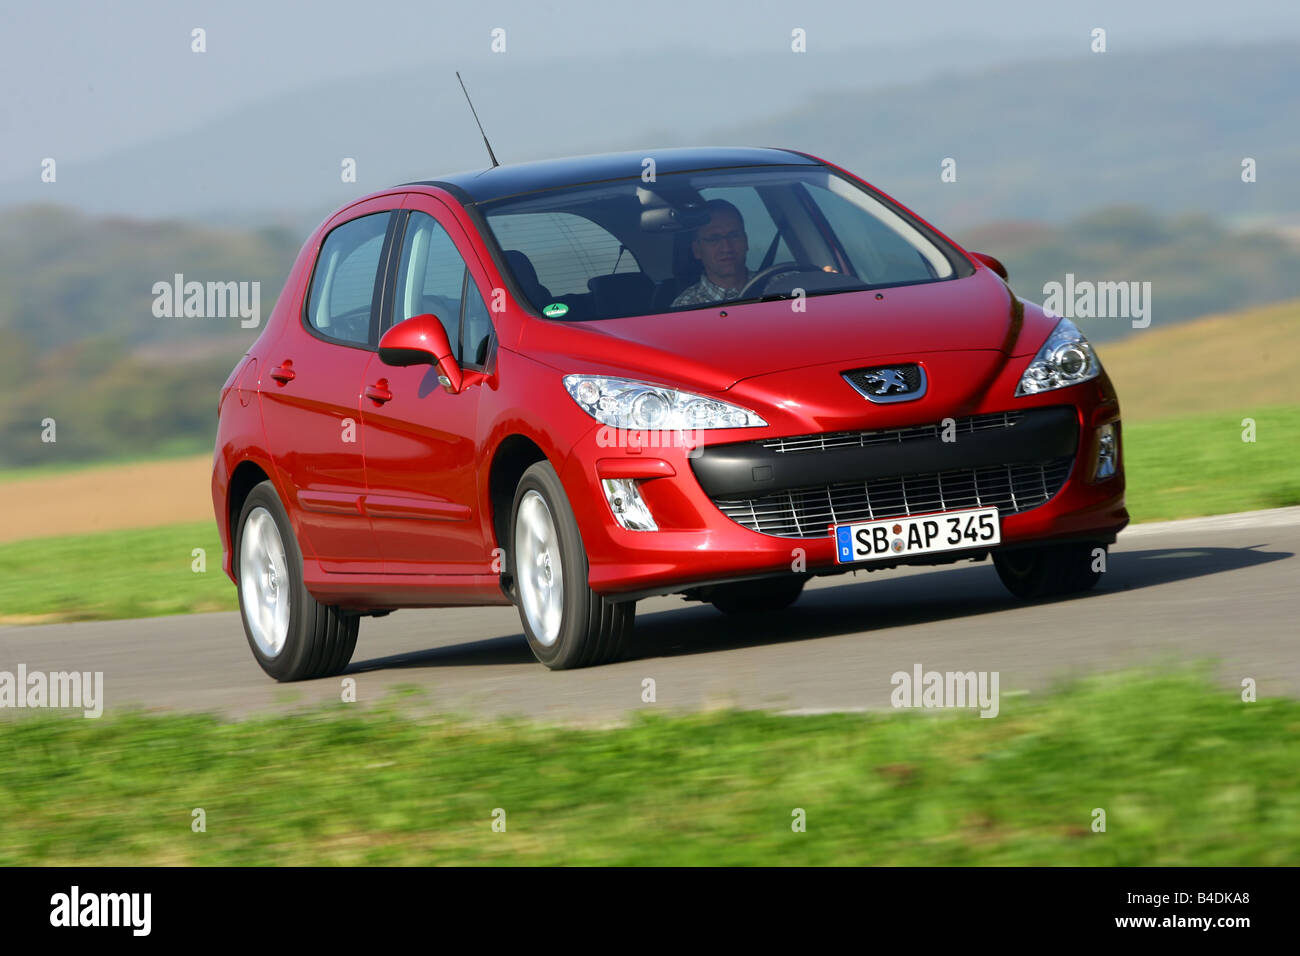 Peugeot 308 150 THP Sport Plus, model year 2007-, red, driving, diagonal from the front, frontal view, country road - Stock Image